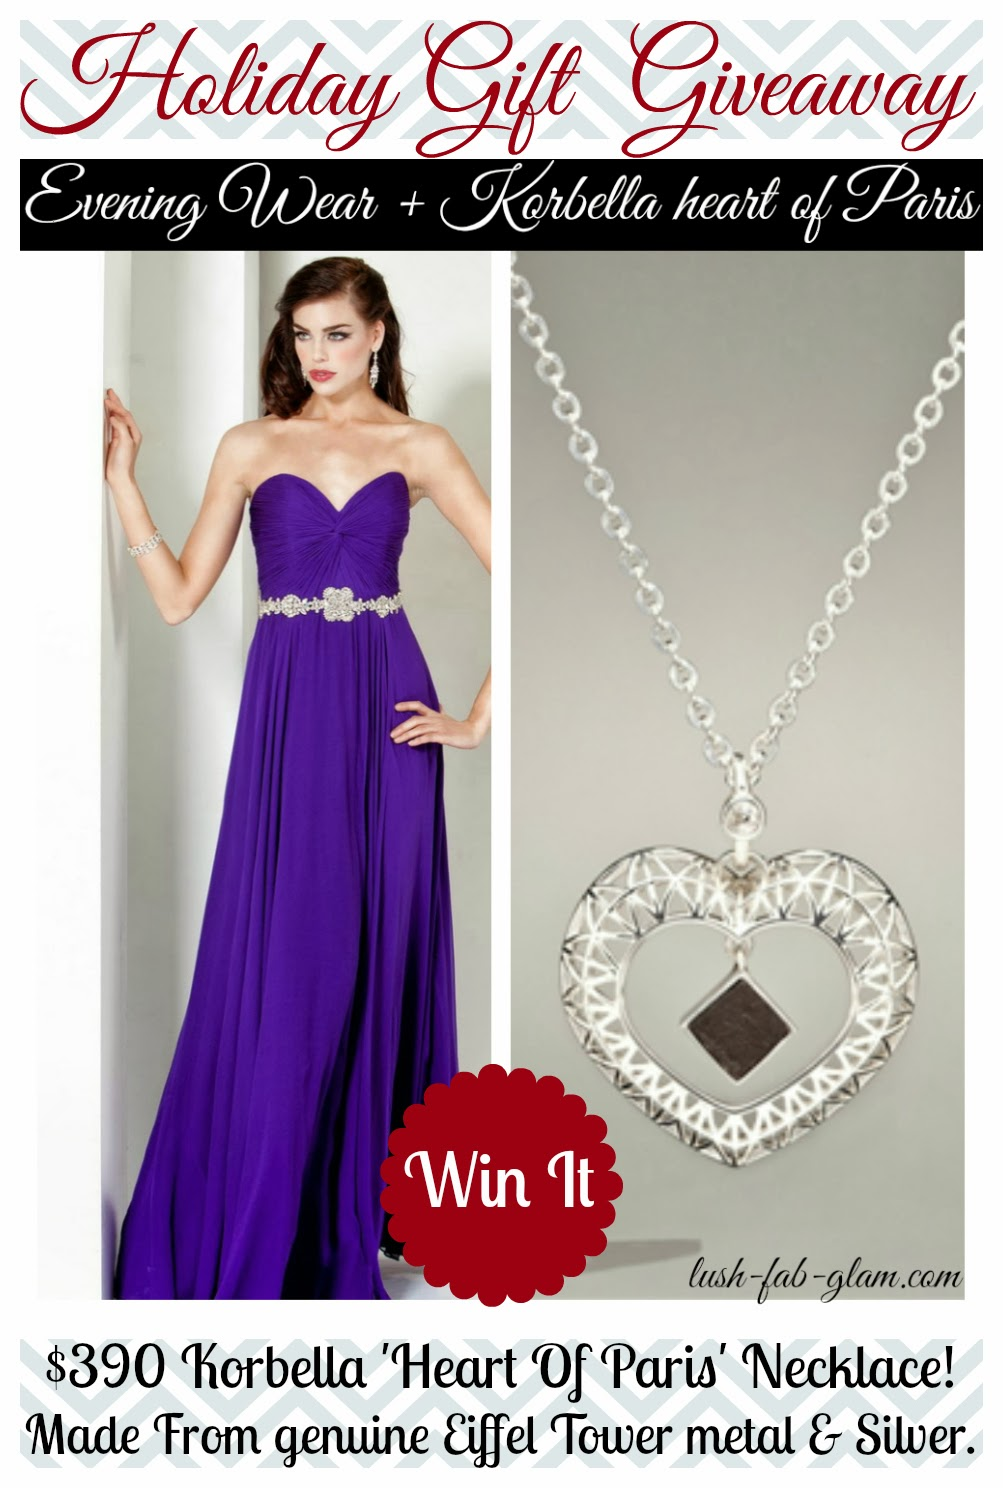 Last Chance To Enter To Win The Korbella Heart Of Paris Necklace $390 Value!